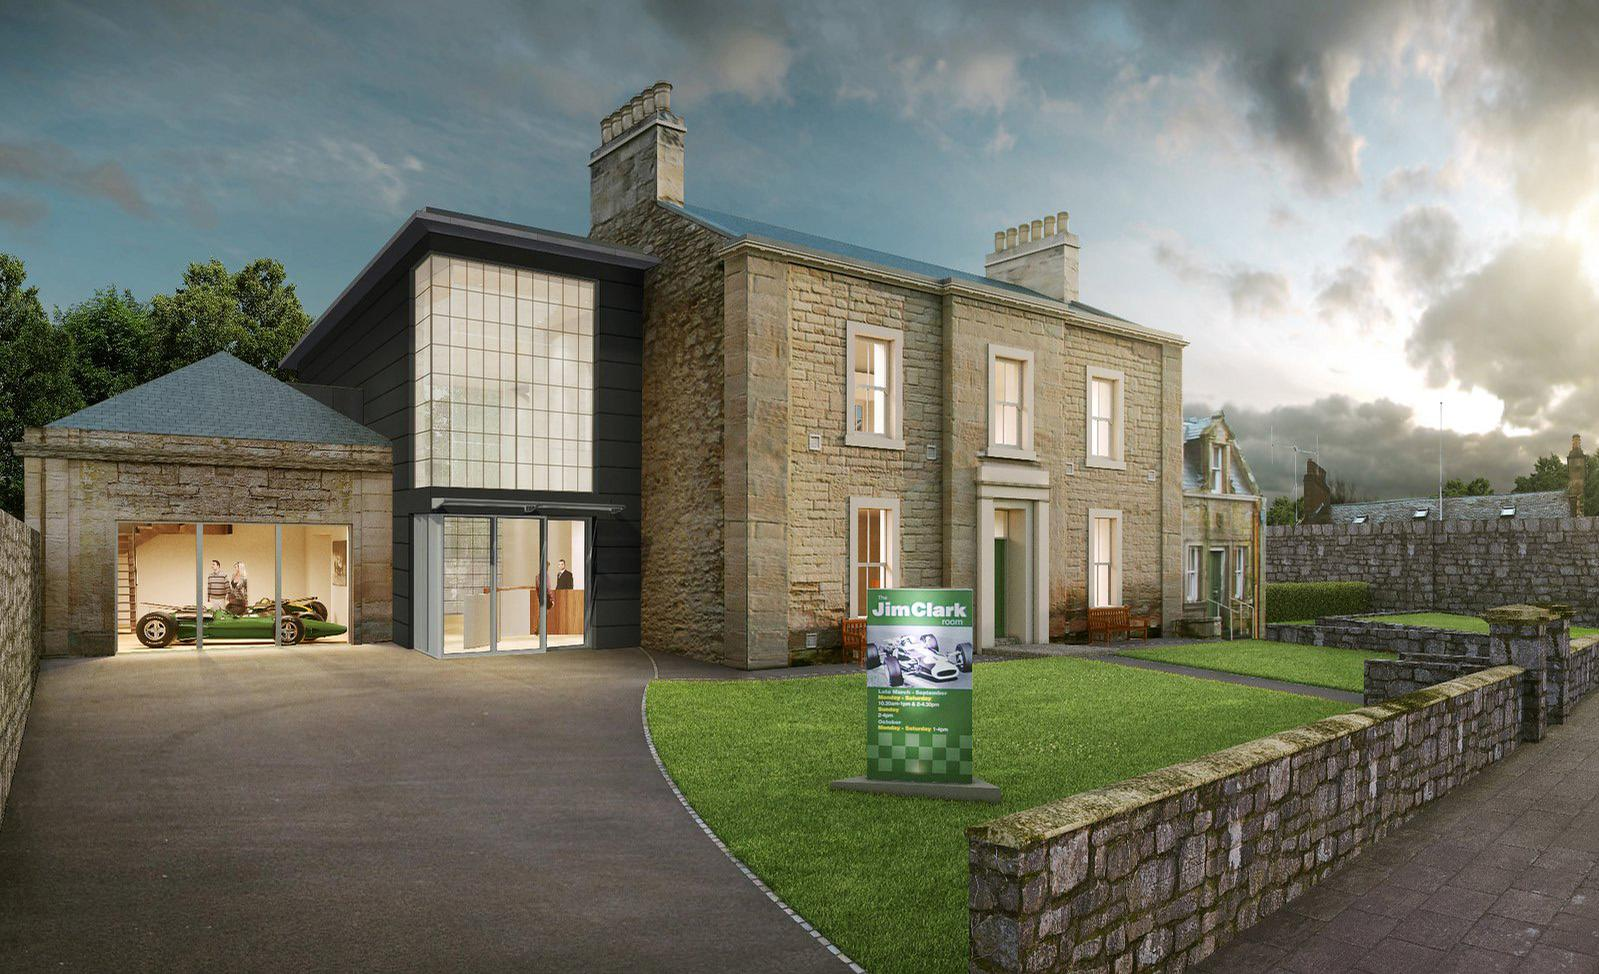 An artist's impression of the new museum in Duns, Scotland